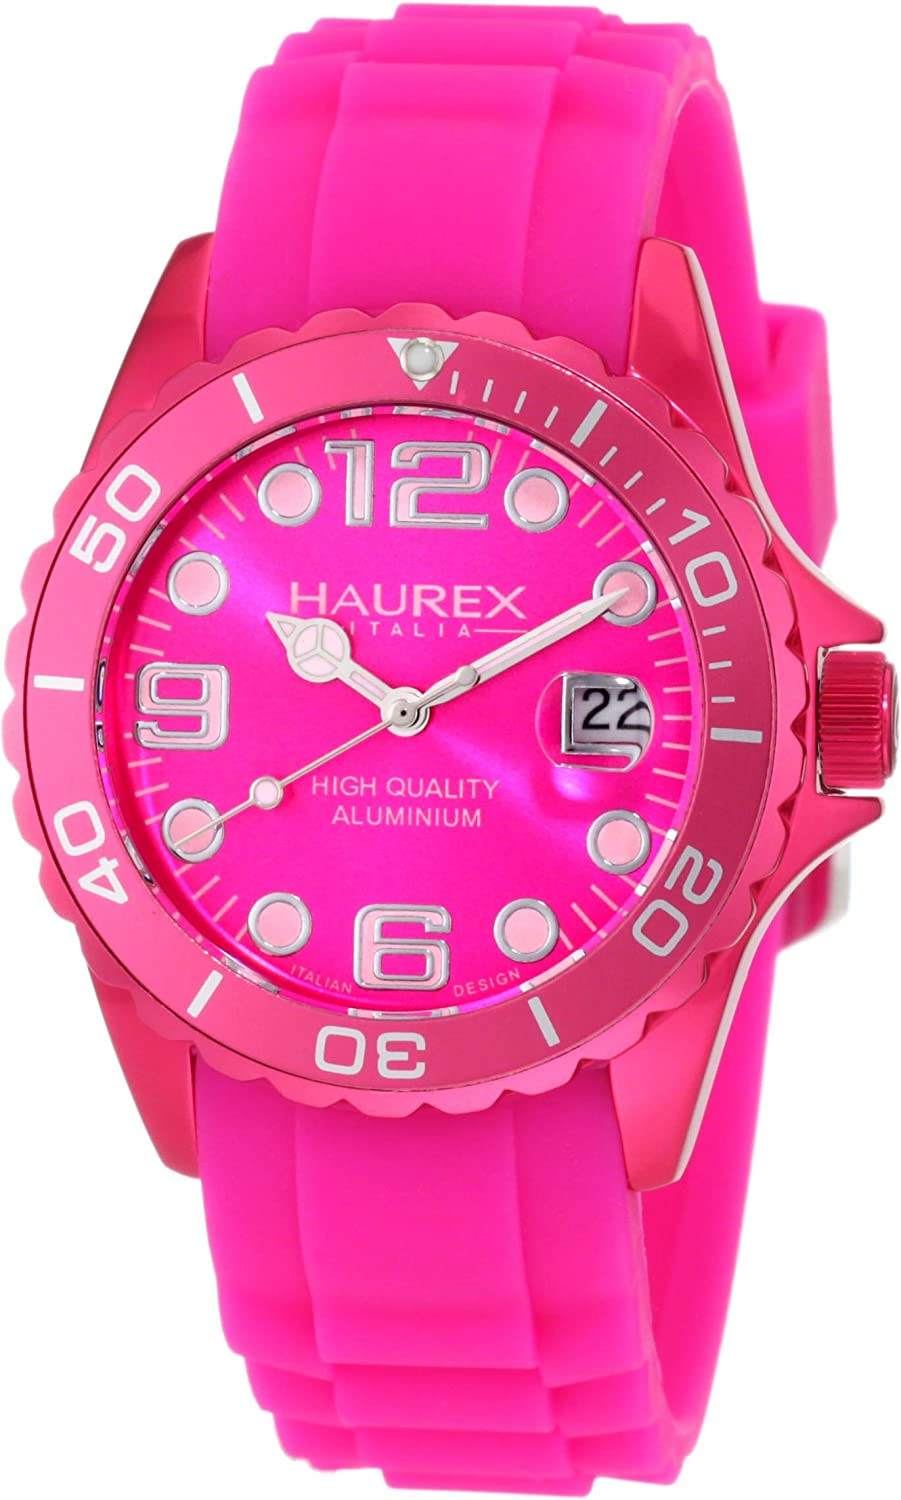 Haurex Italy Women's 1K374DP2 Ink Hot Rubber Pink Band Aluminum Animer and price revision Spring new work